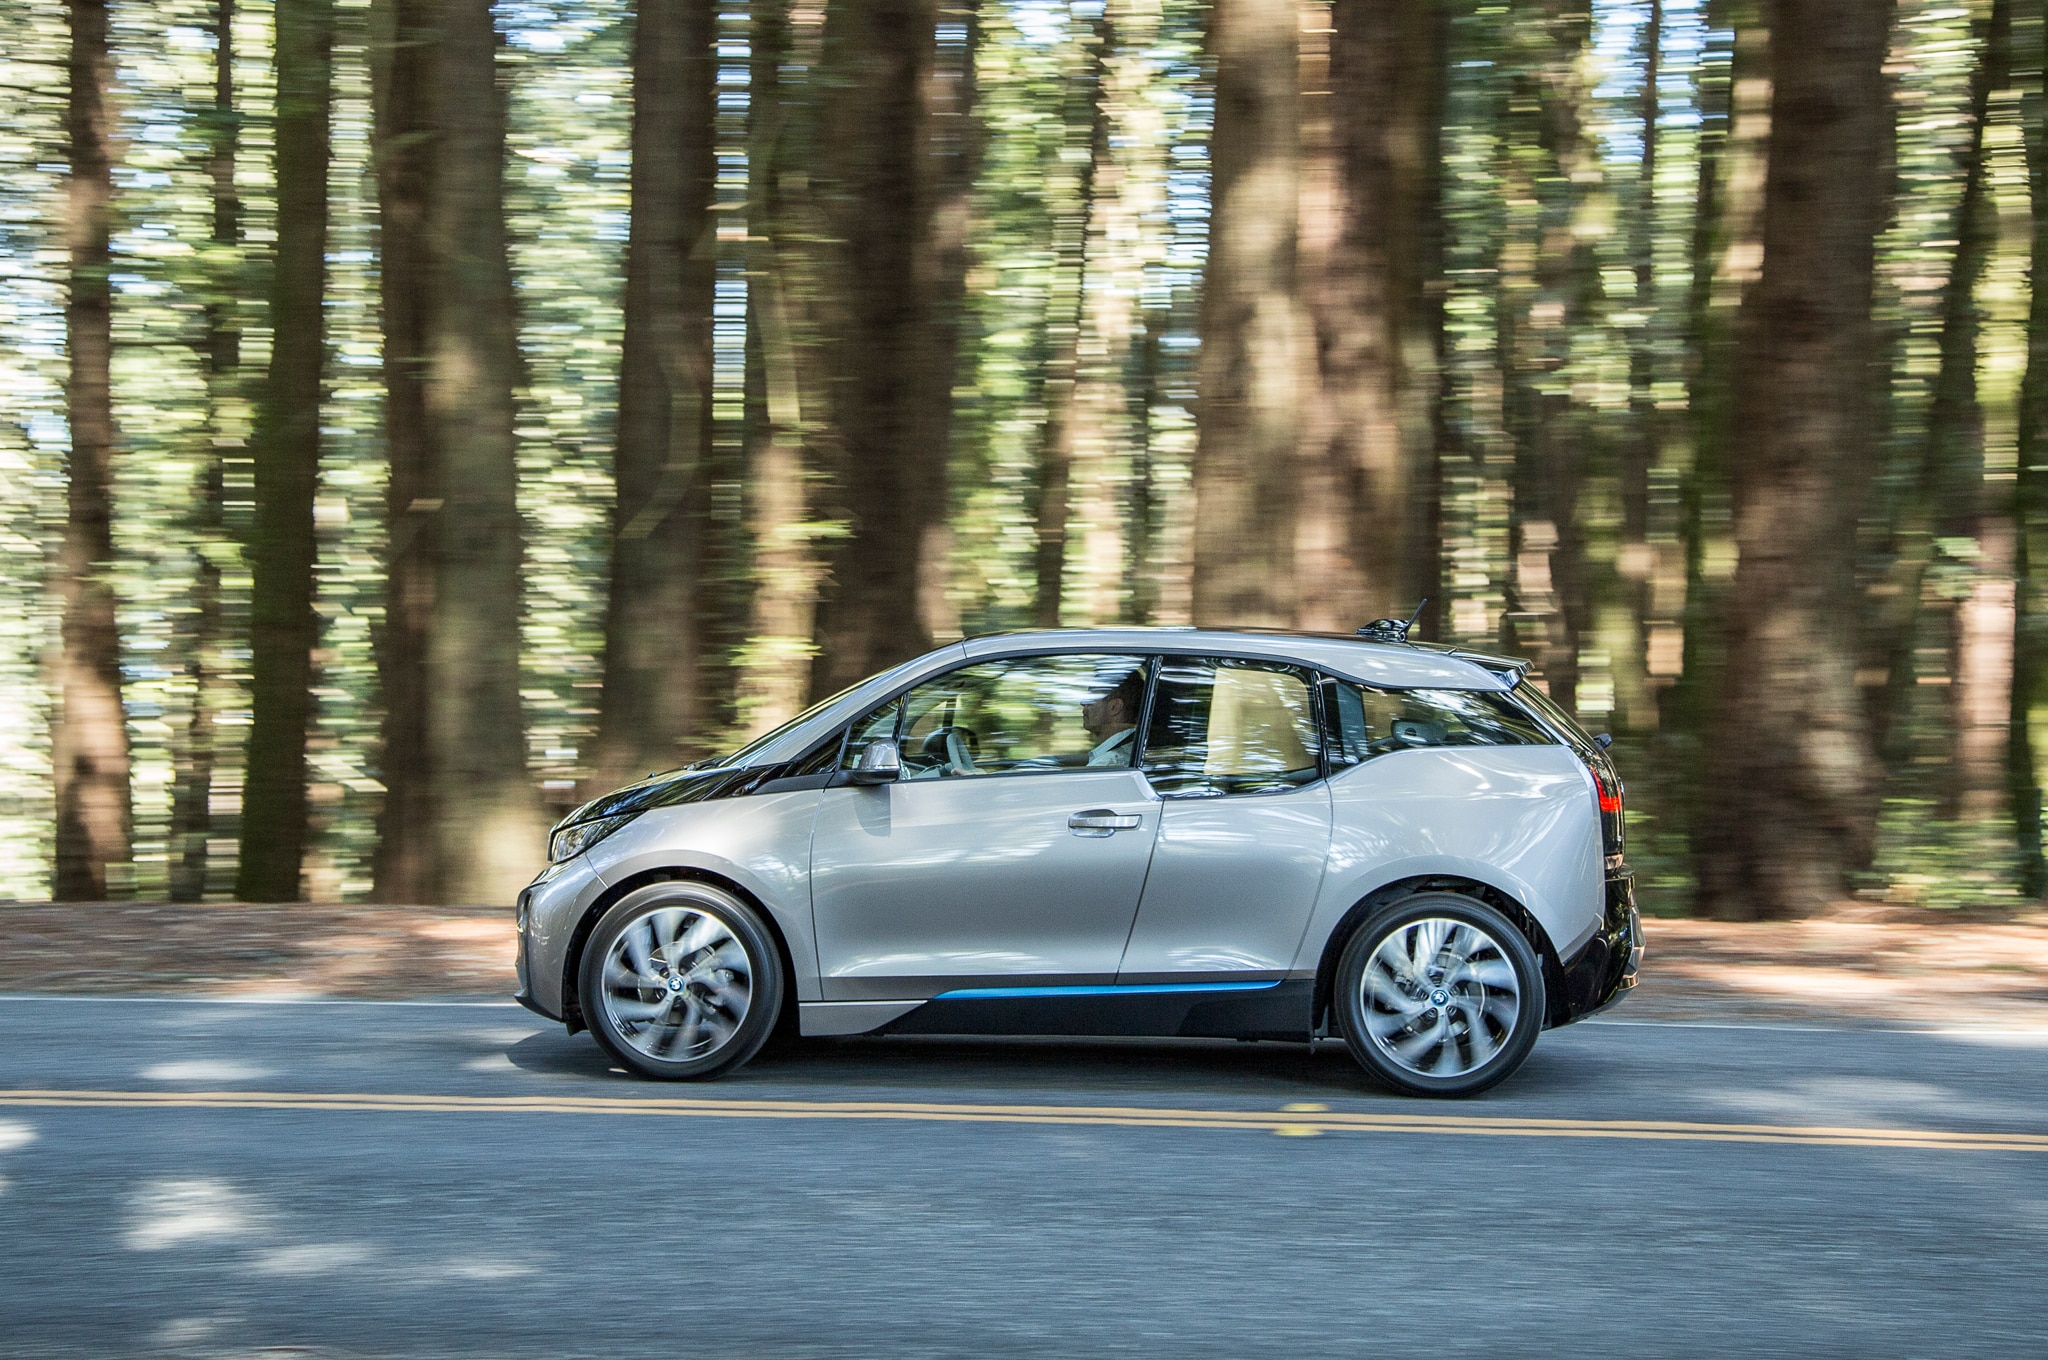 226 electric miles in silicon valley in a 2014 bmw i3. Black Bedroom Furniture Sets. Home Design Ideas